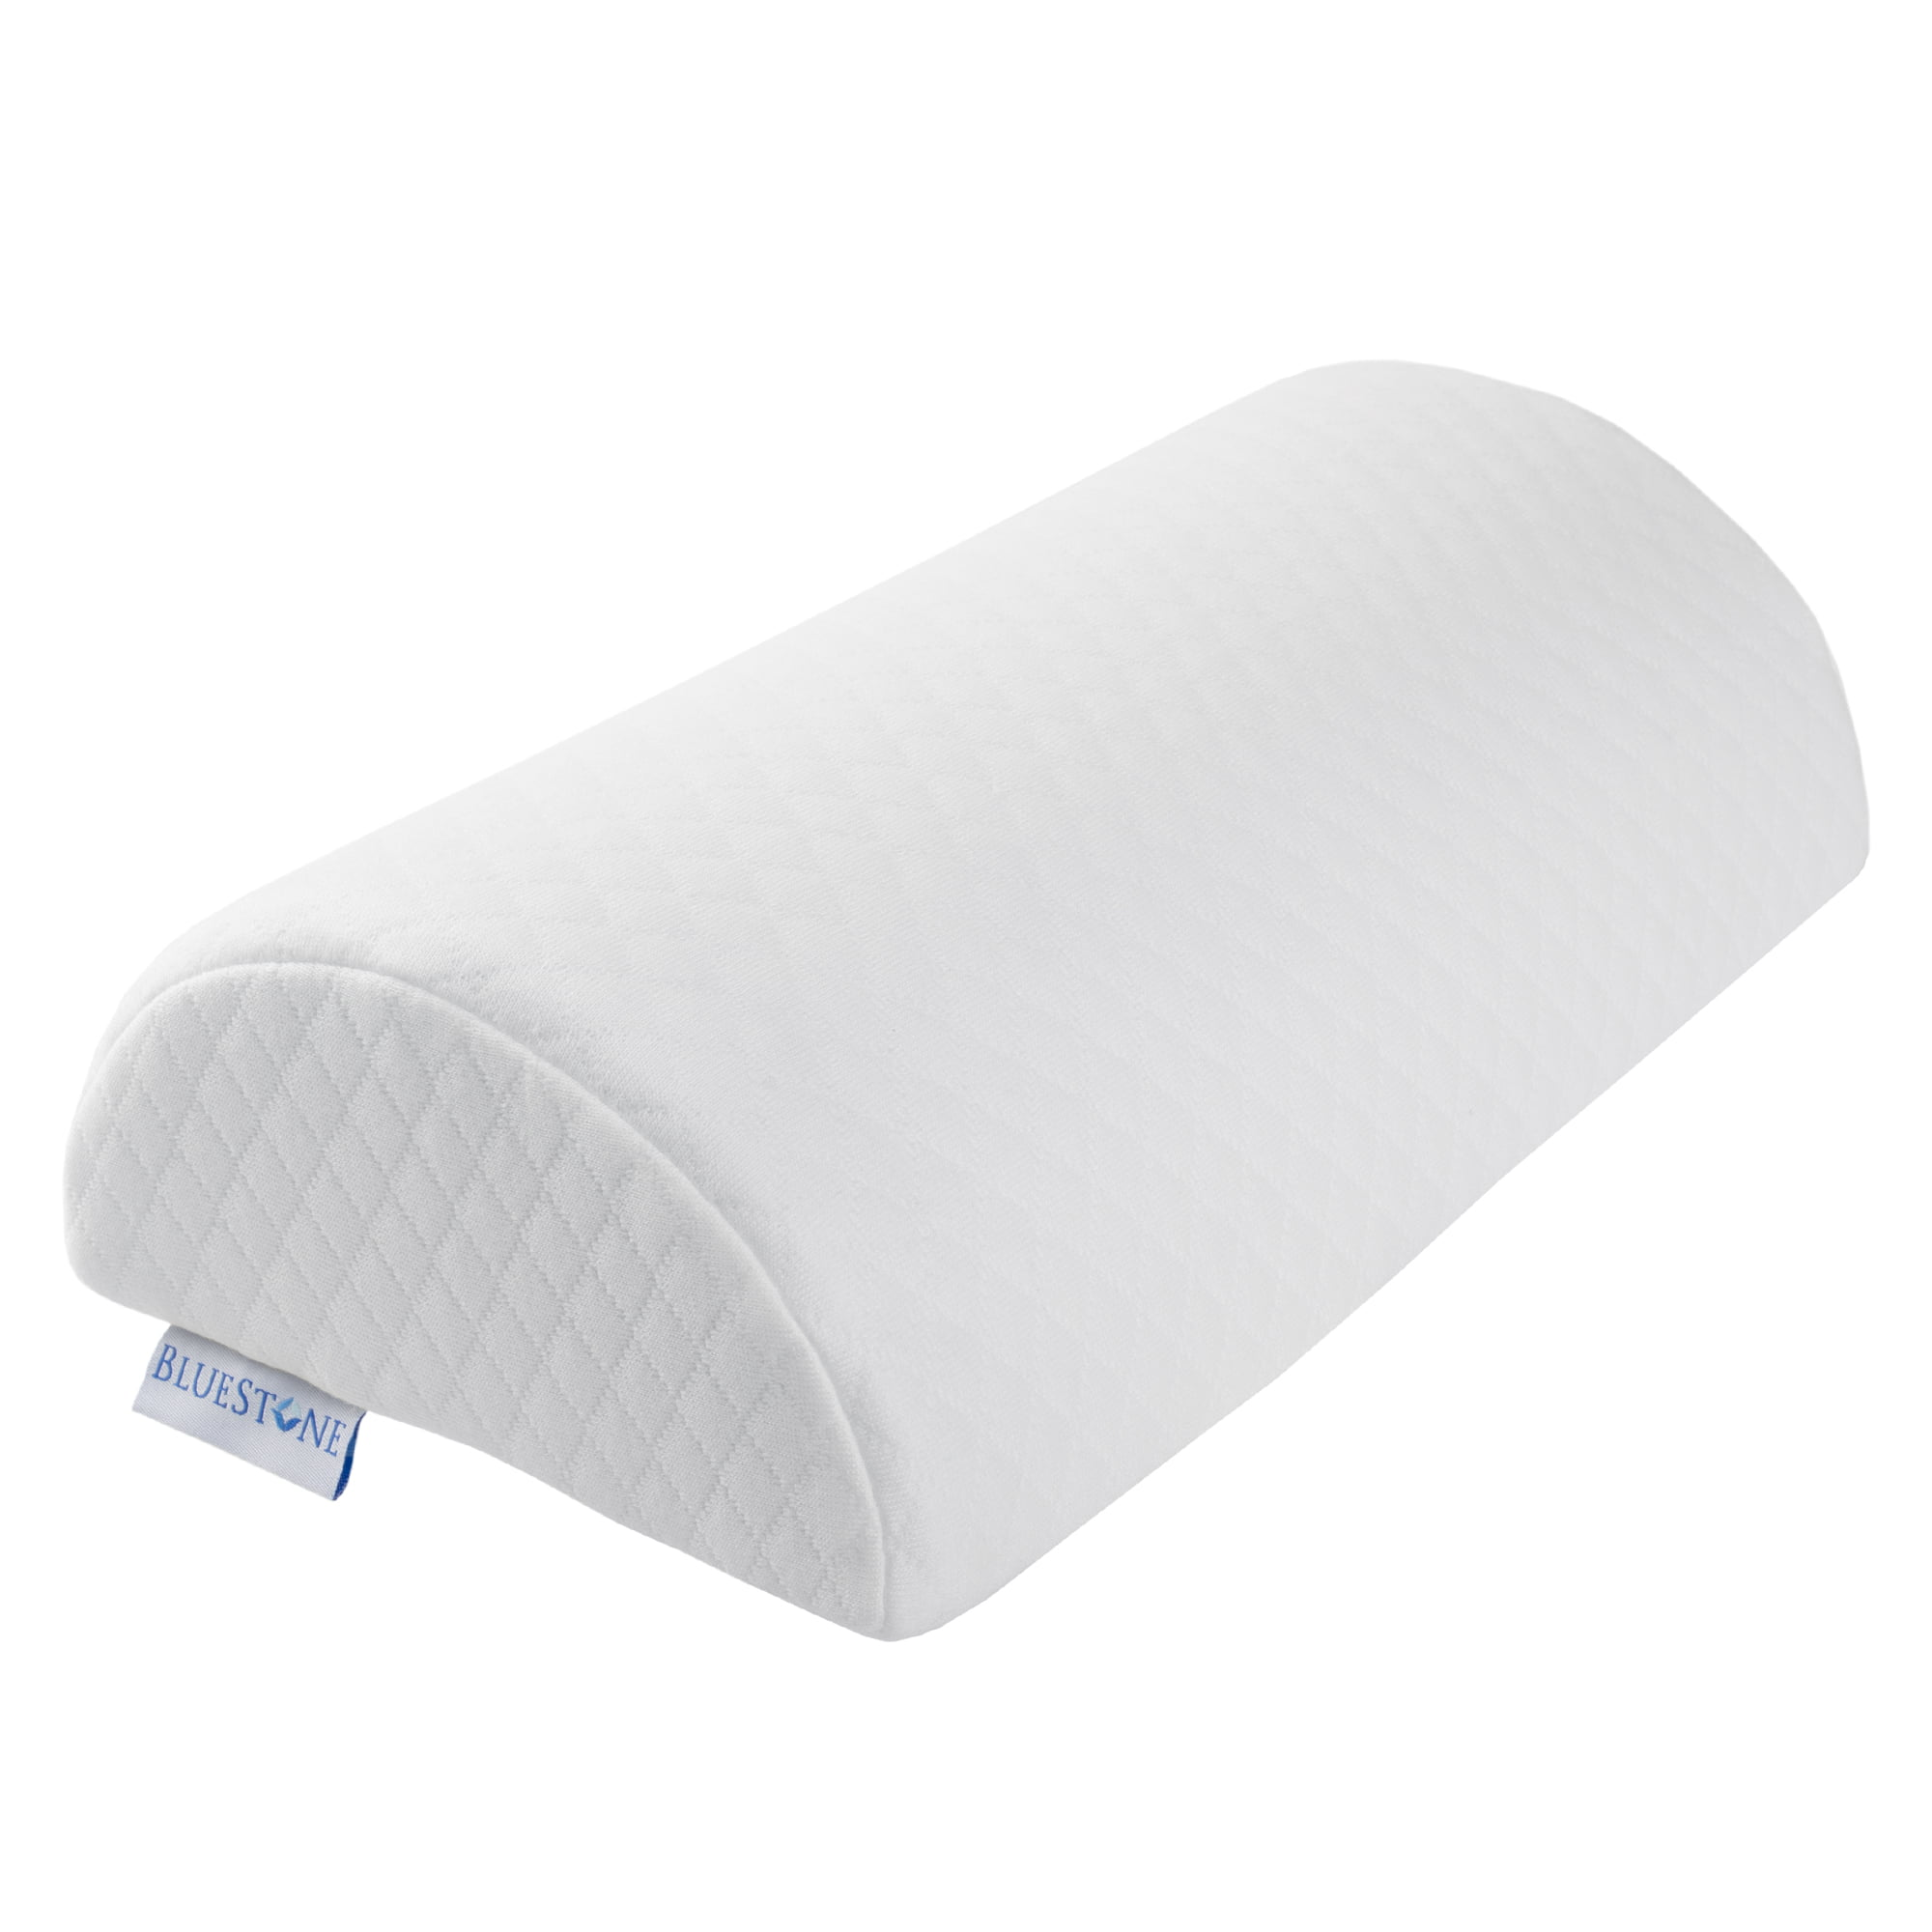 D Shape Comfort Roll Pillow Memory Foam Neck Knee Leg Spacer Back Lumbar Support